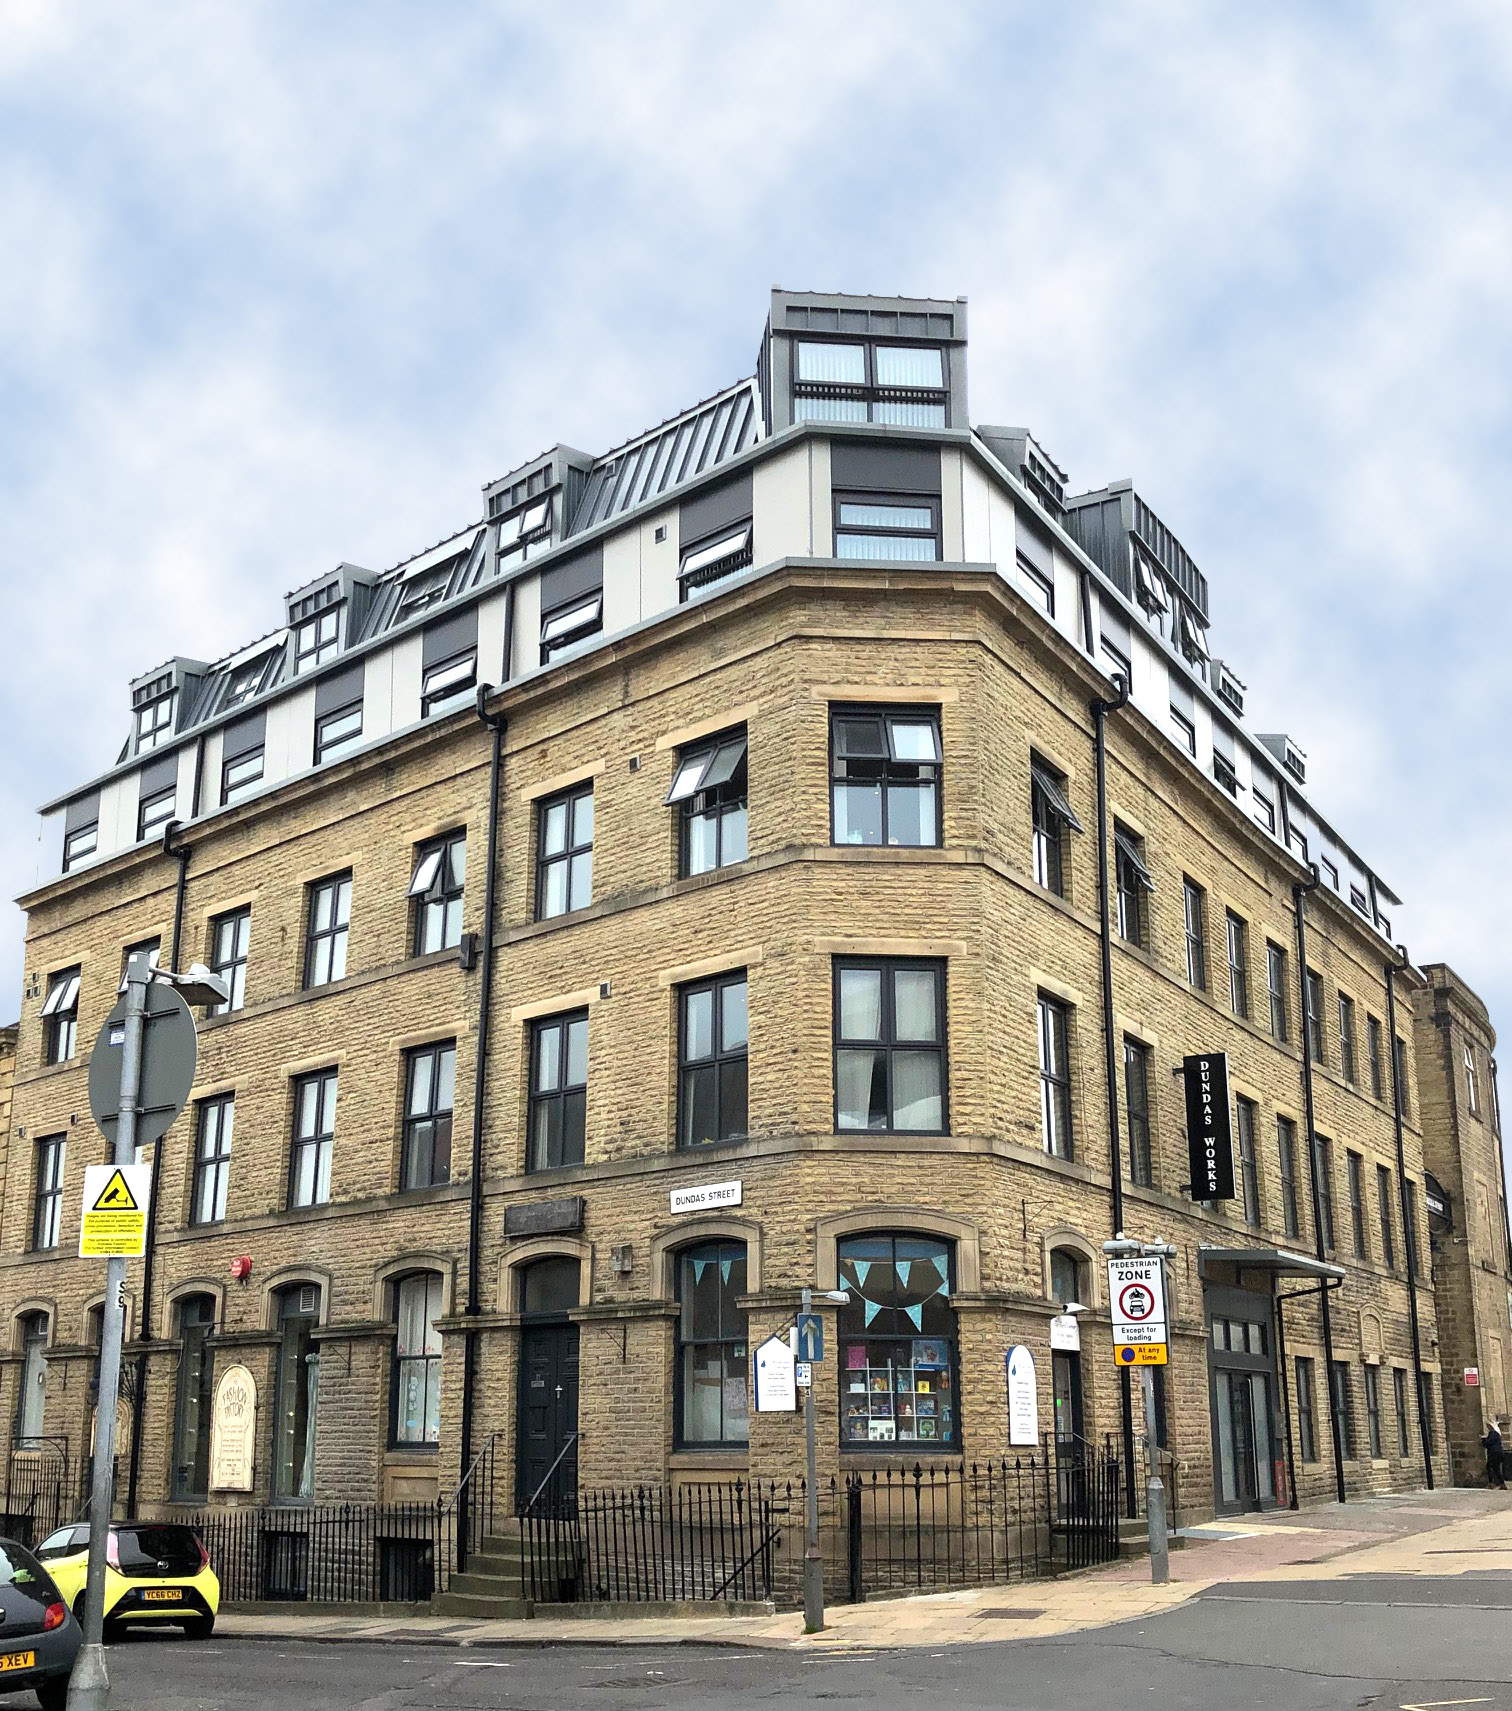 Student accommodation architects in Manchester, Leeds and London